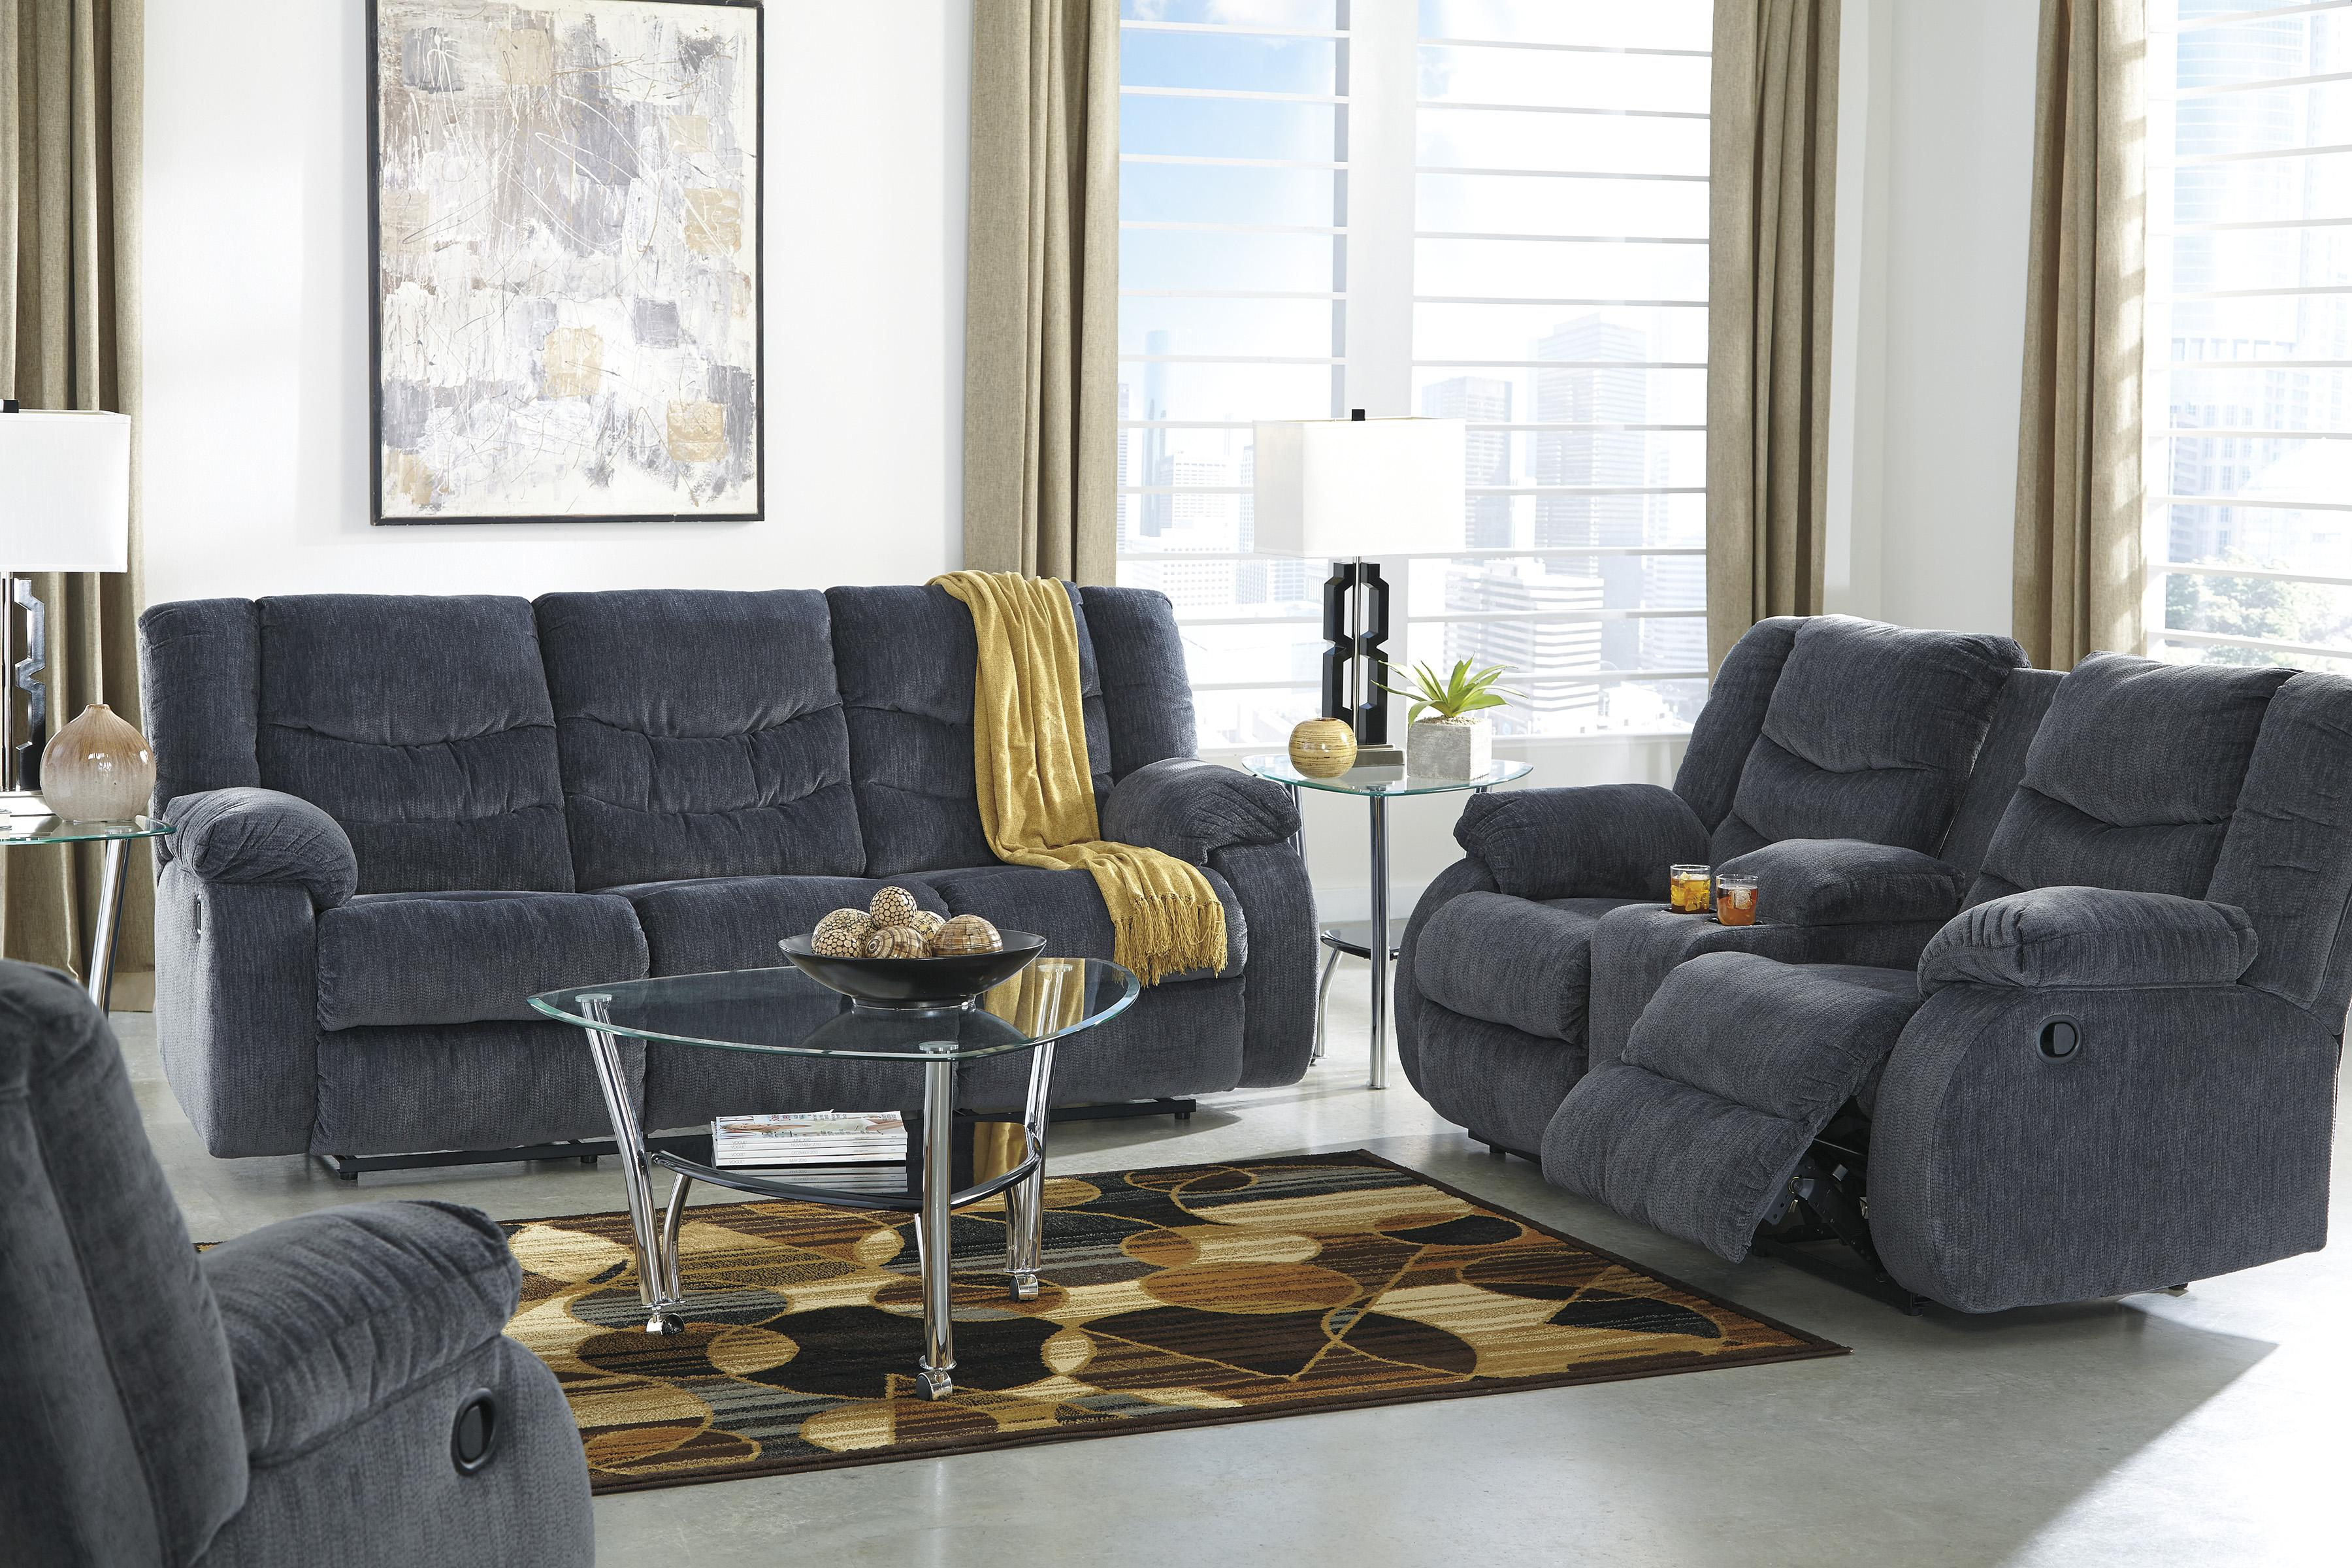 Signature Design by Ashley Garek - Blue Reclining Living Room Group - Item Number: 92001 Living Room Group 1